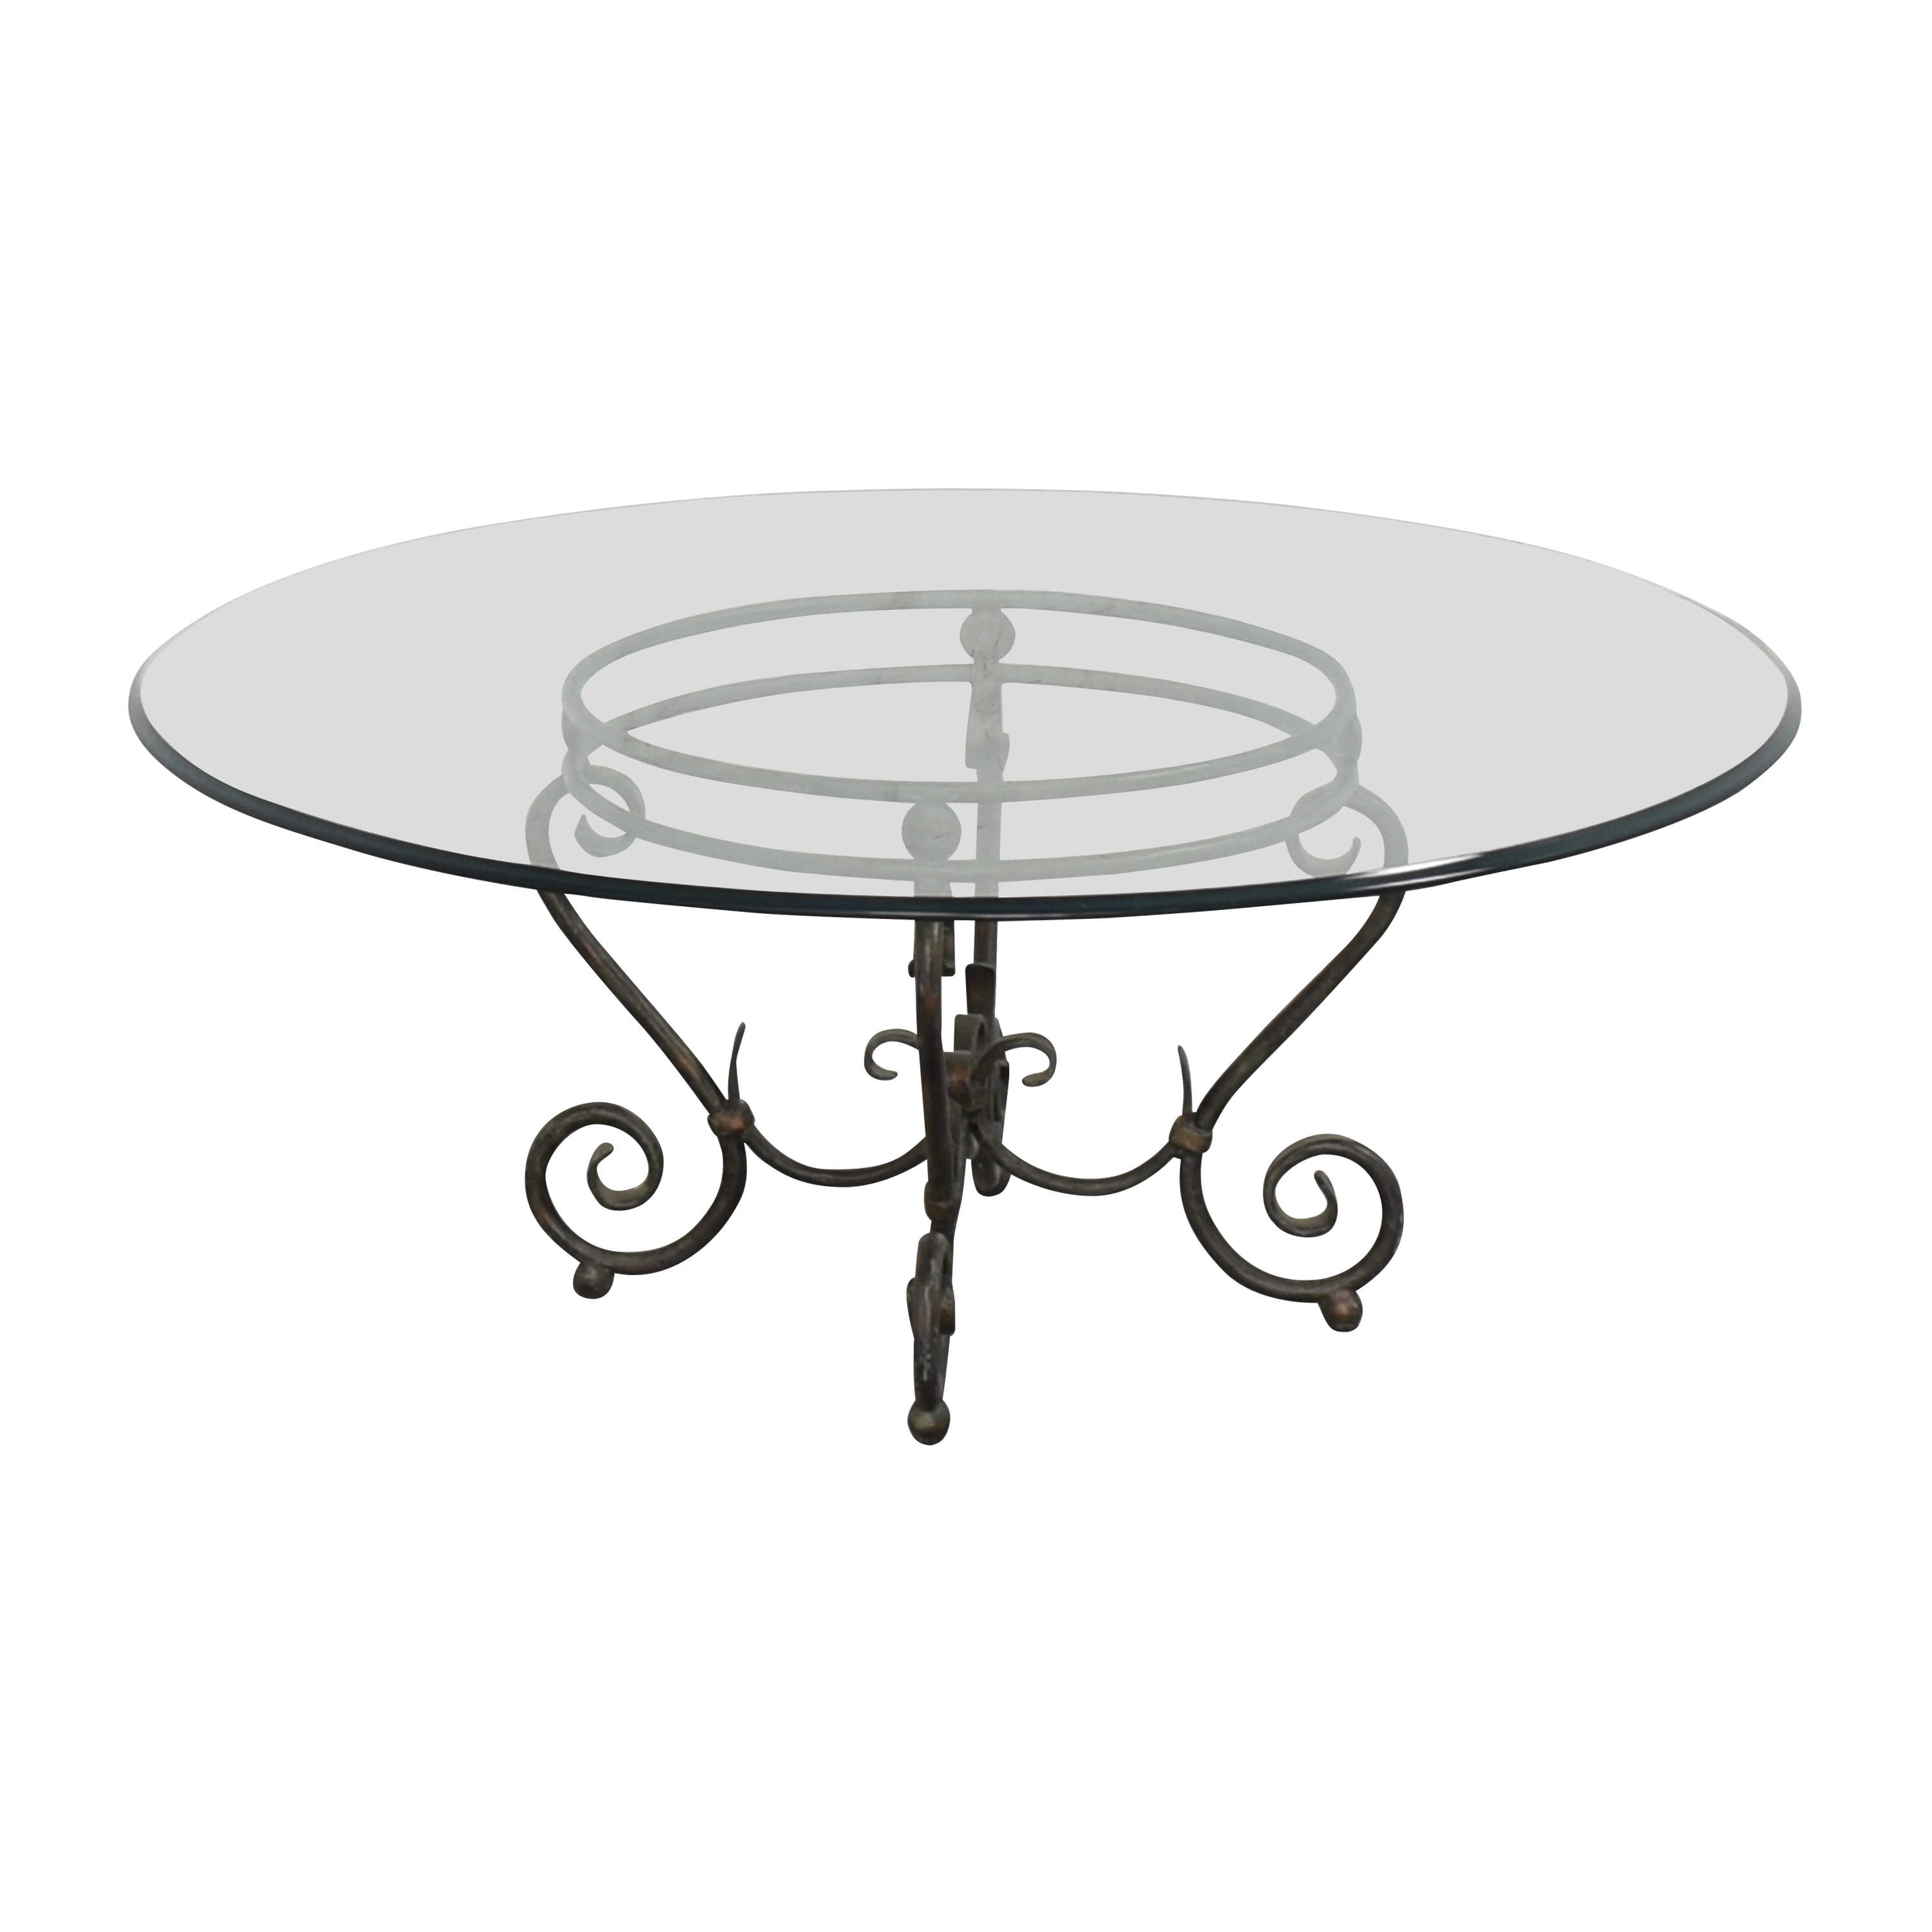 Transparent Coffee Table with Decorative Base / Tables